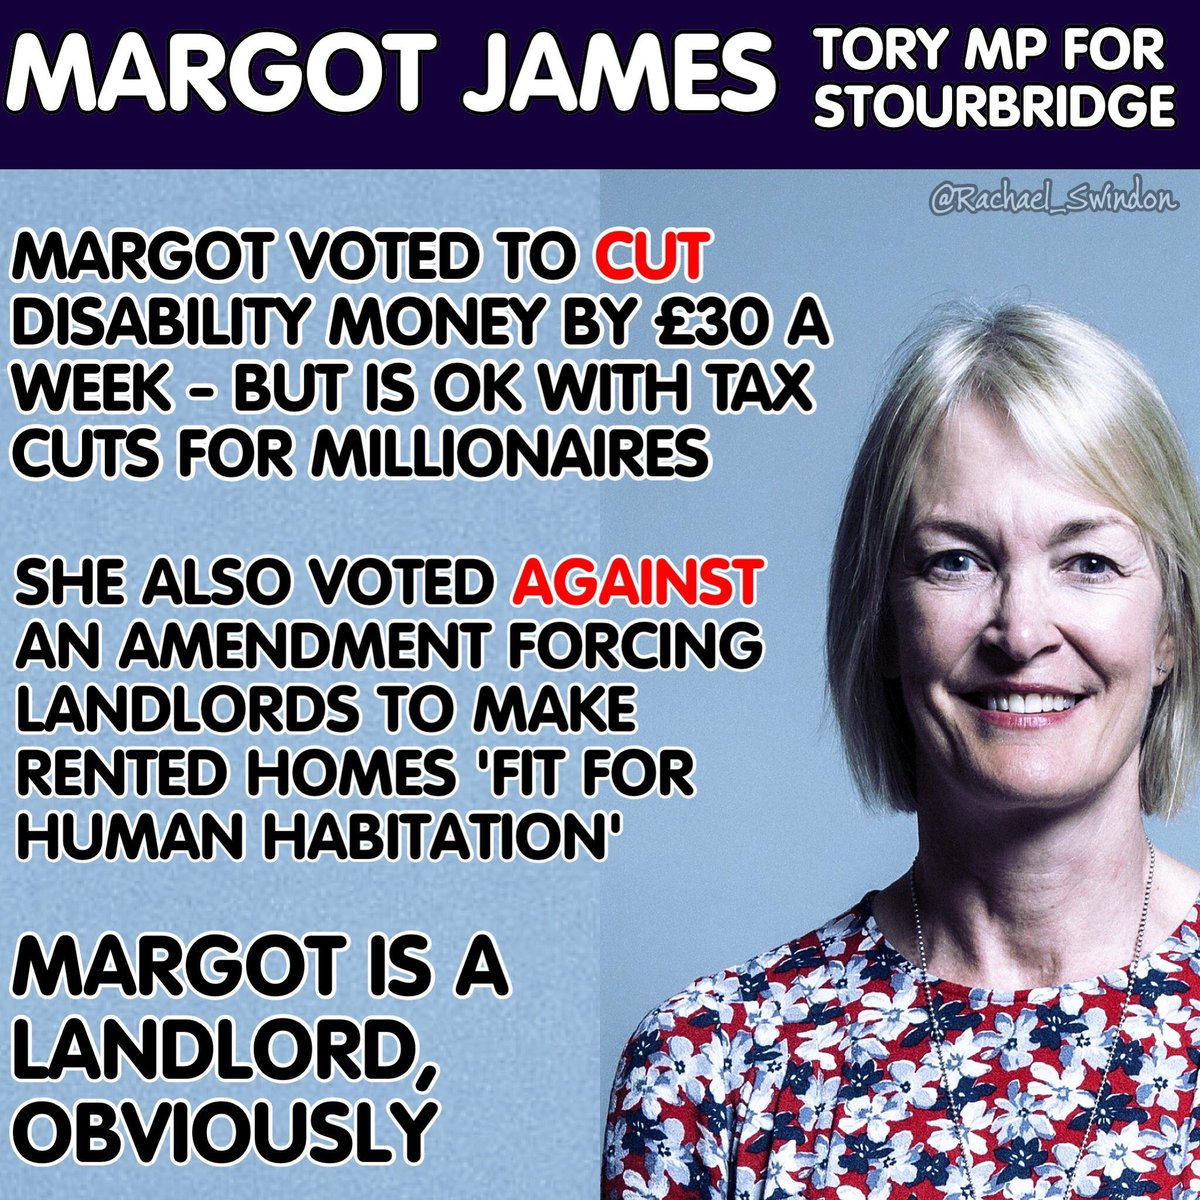 Today on #BBCSP for the Tories is @margot_james_mp and she is one of a large number of Tory MPs that voted against homes that are fit for human habitation, despite being a landlord herself. What lucky tenants she must have.<br>http://pic.twitter.com/agppqtuV9K